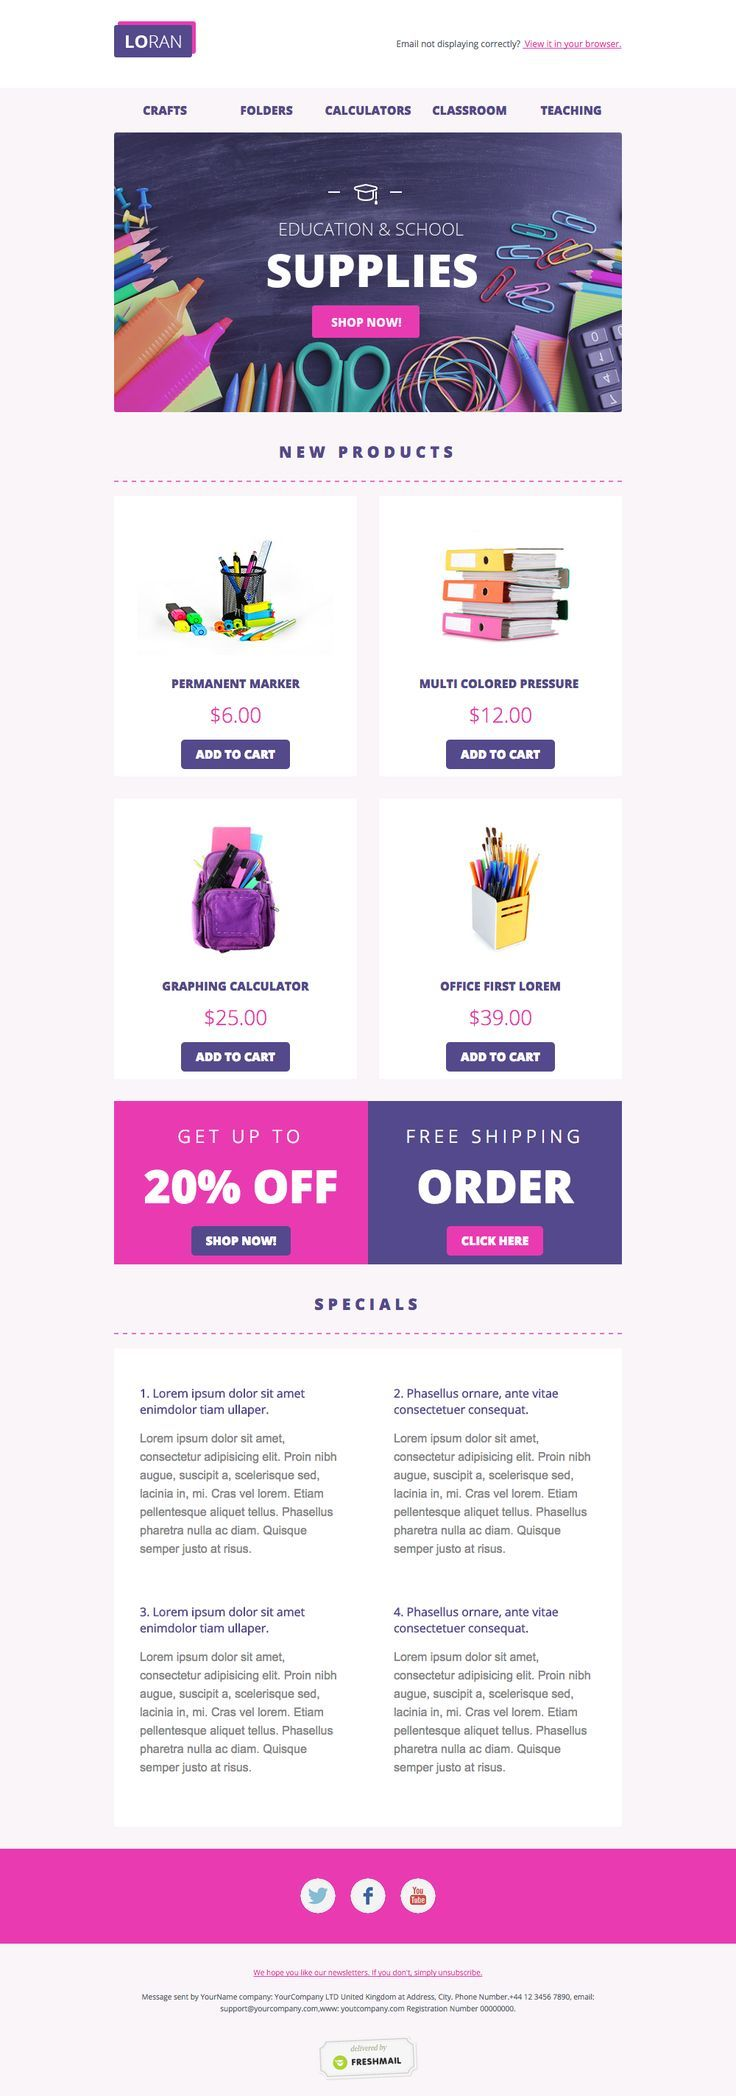 Office Depot E Commerce Newsletter Design Ideas Examples For Your Inspiration Email T Newsletter Templates Email Template Design Email Newsletter Template